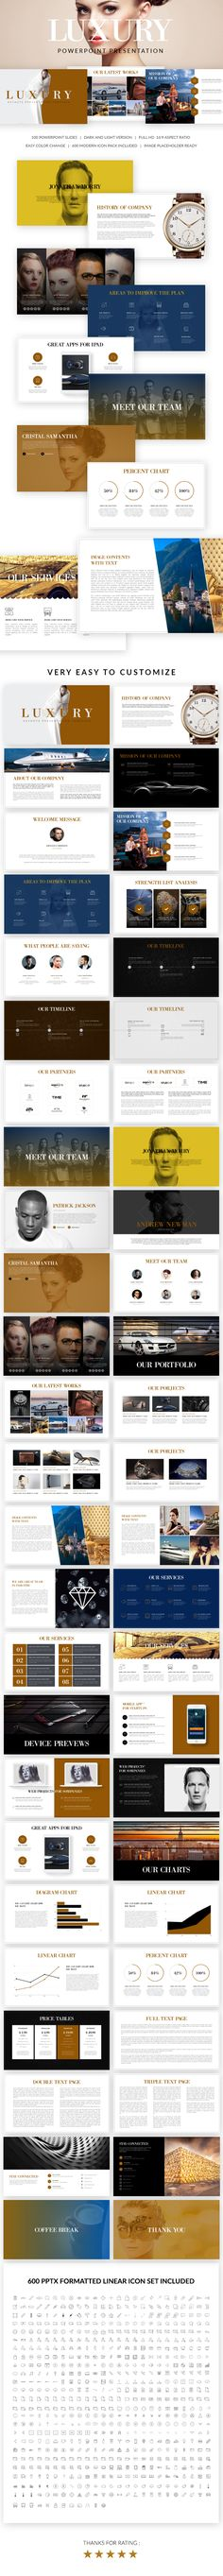 Luxury Powerpoint Presentation Template. Download here: http://graphicriver.net/item/luxury-powerpoint-presentation-template/15841116?ref=ksioks